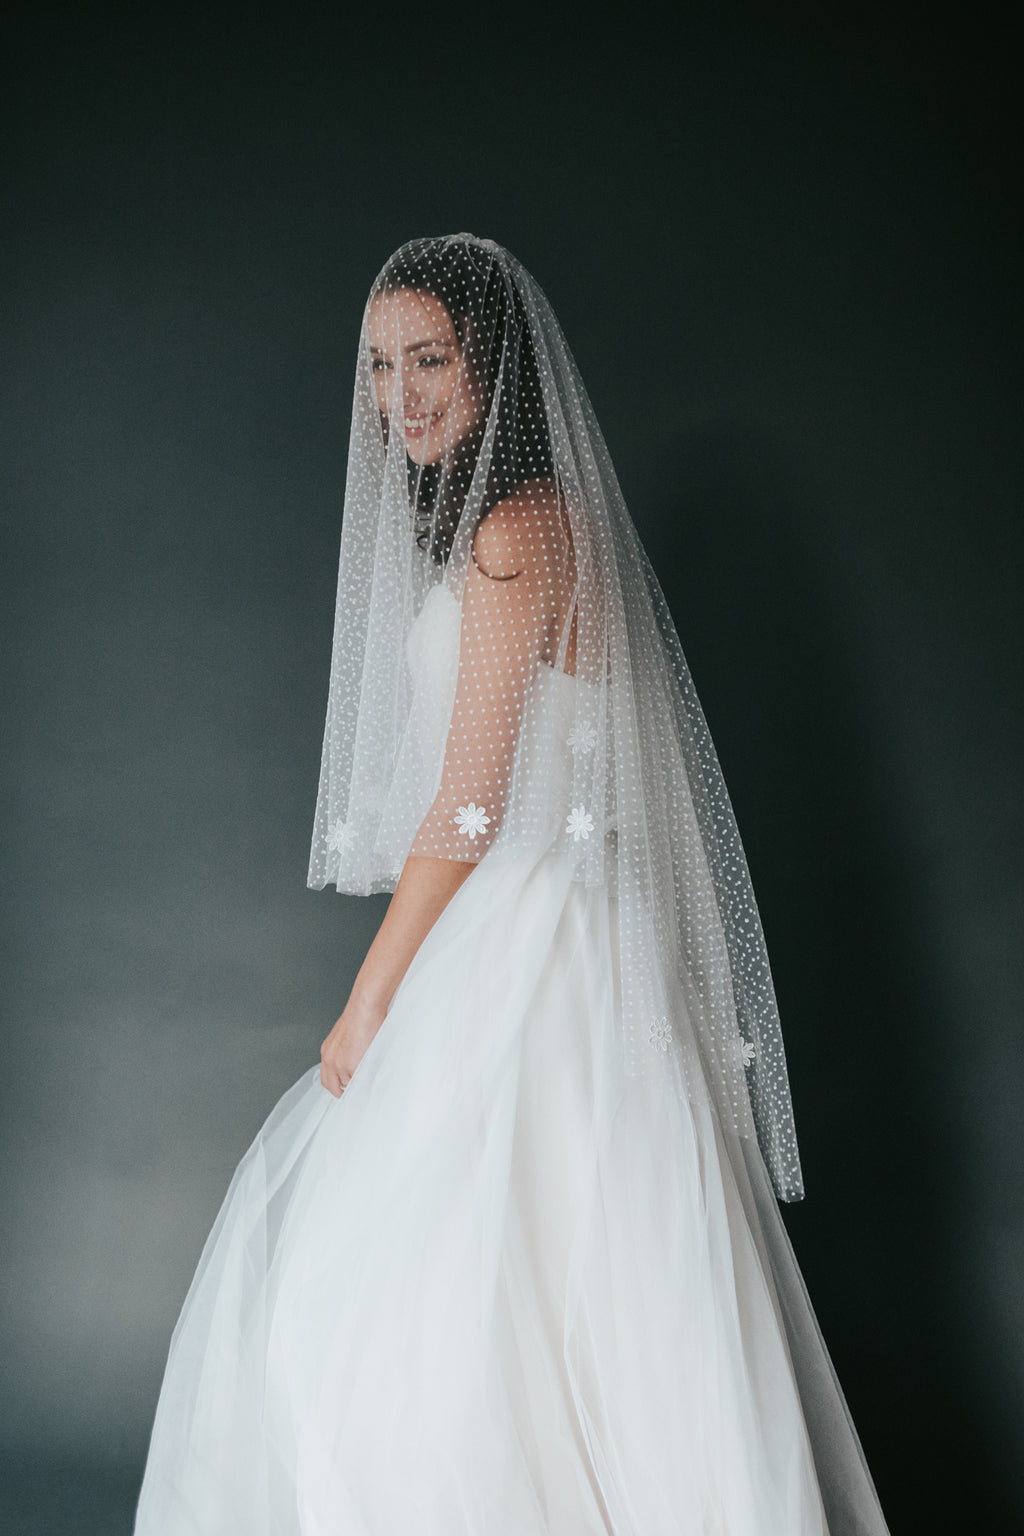 Polka Dotted Mid-Length Floral Veil (No.15)